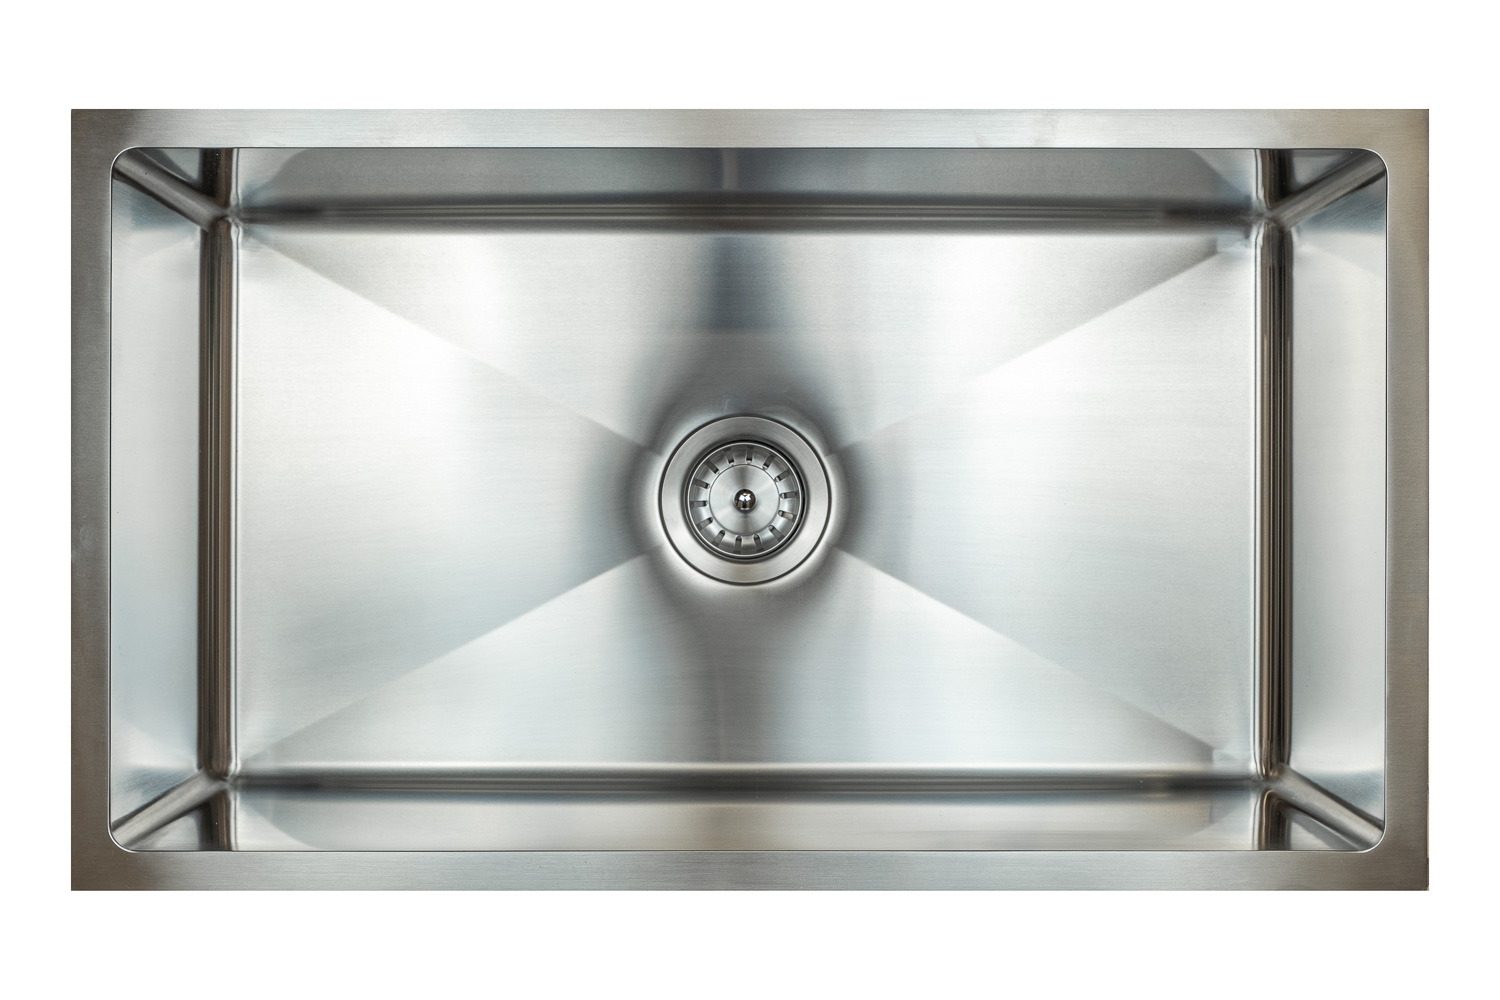 Evo5050 Small Radius Sink